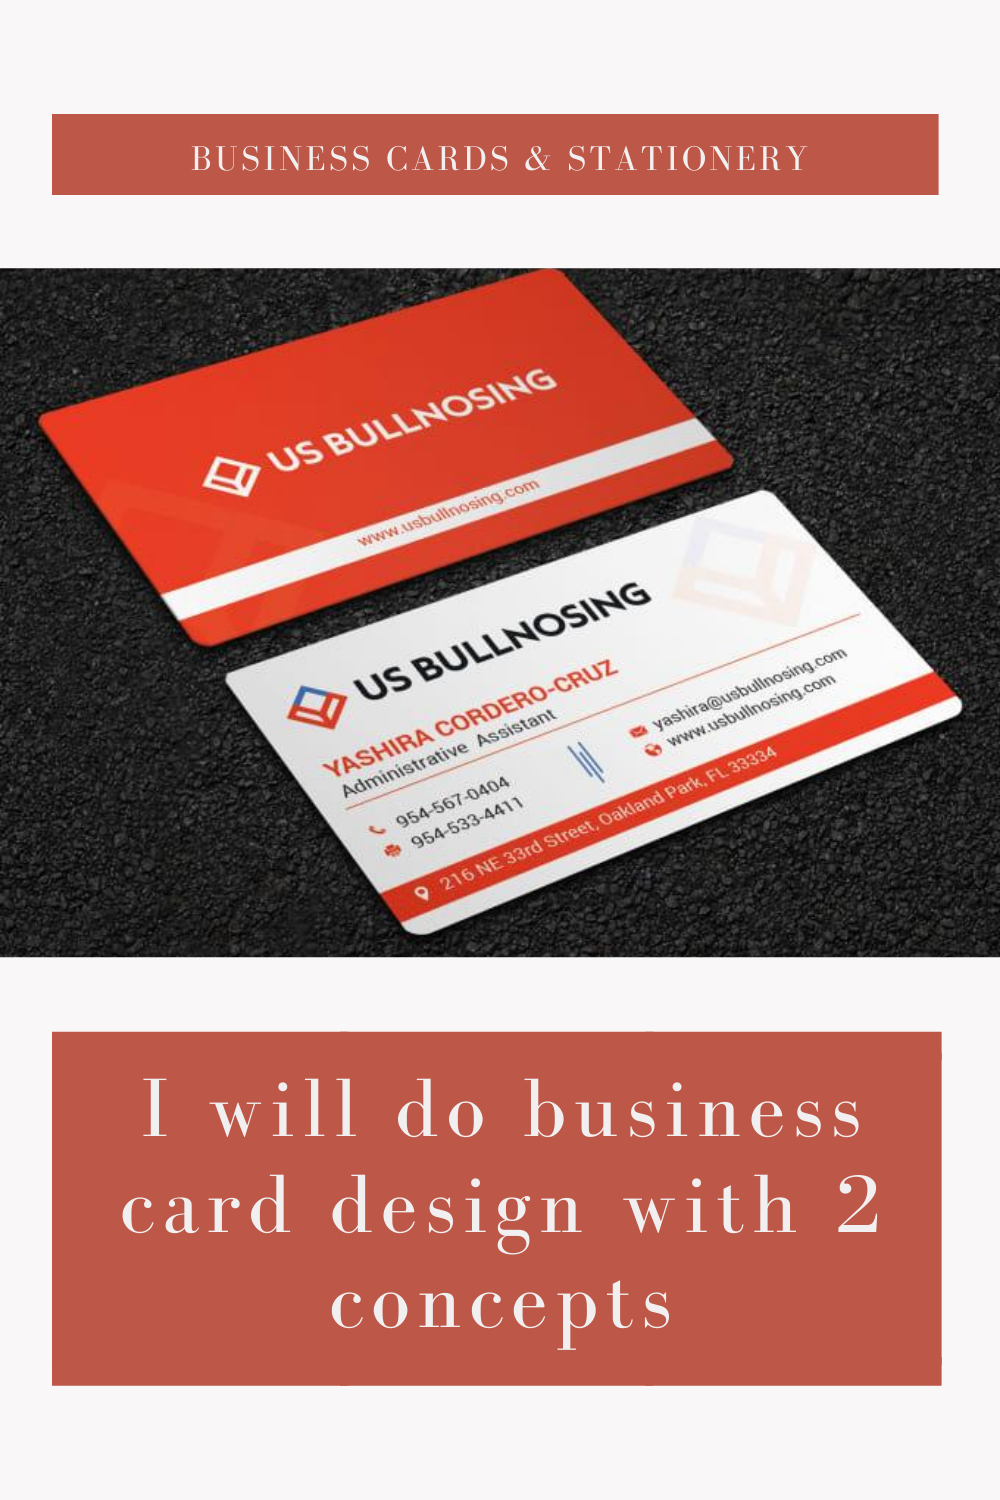 Ananda93 I Will Design Business Card With 2 Concepts For 15 On Fiverr Com Business Card Design Business Design Business Cards